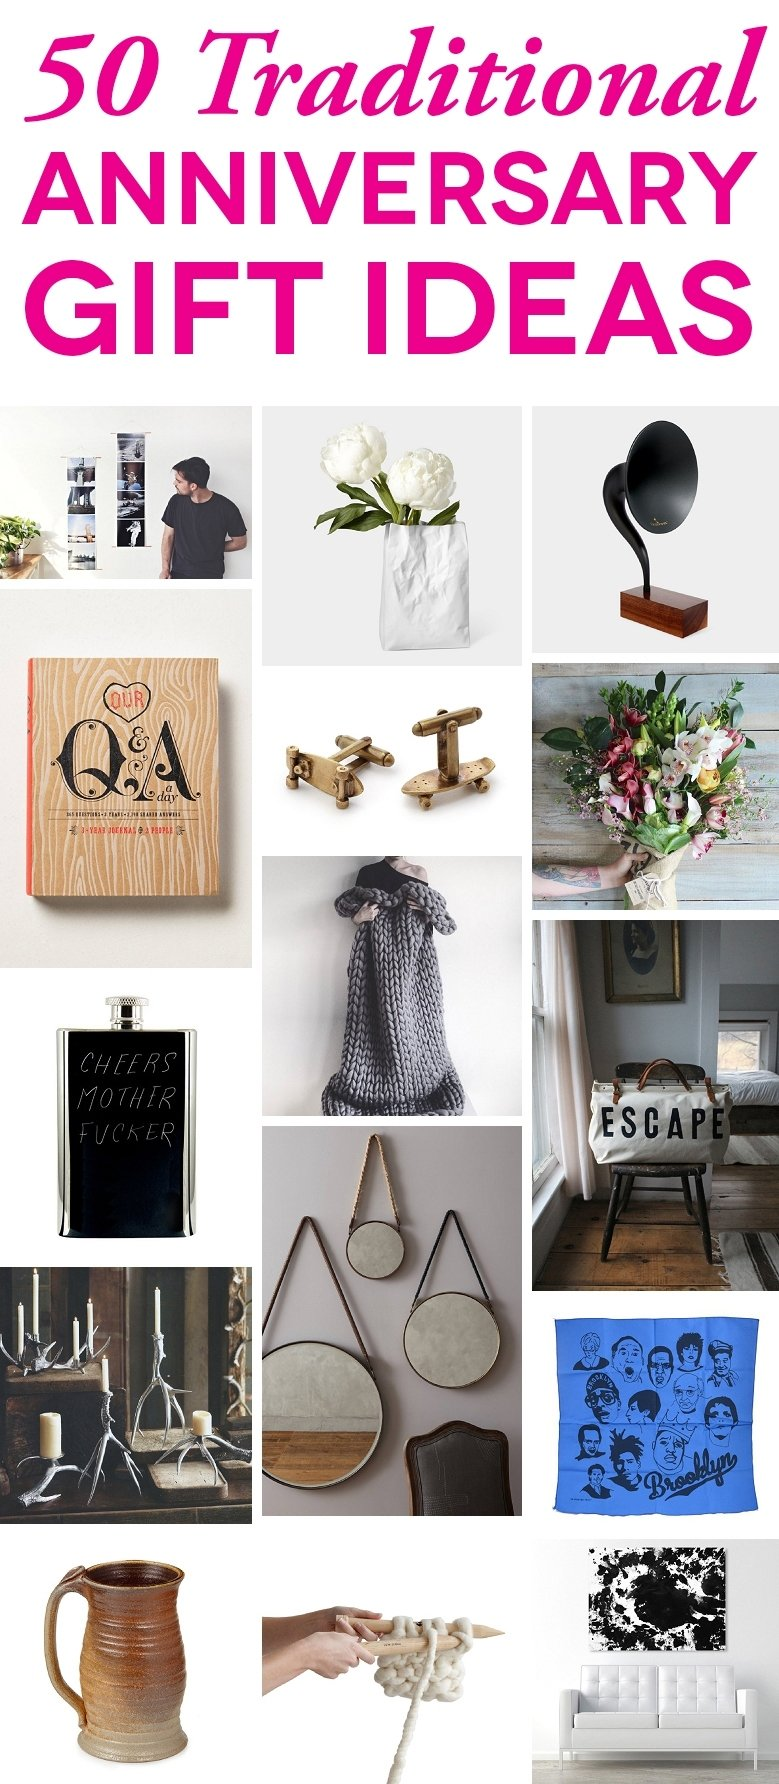 10 Famous 8Th Anniversary Gift Ideas For Her traditional anniversary giftsyear a practical wedding 5